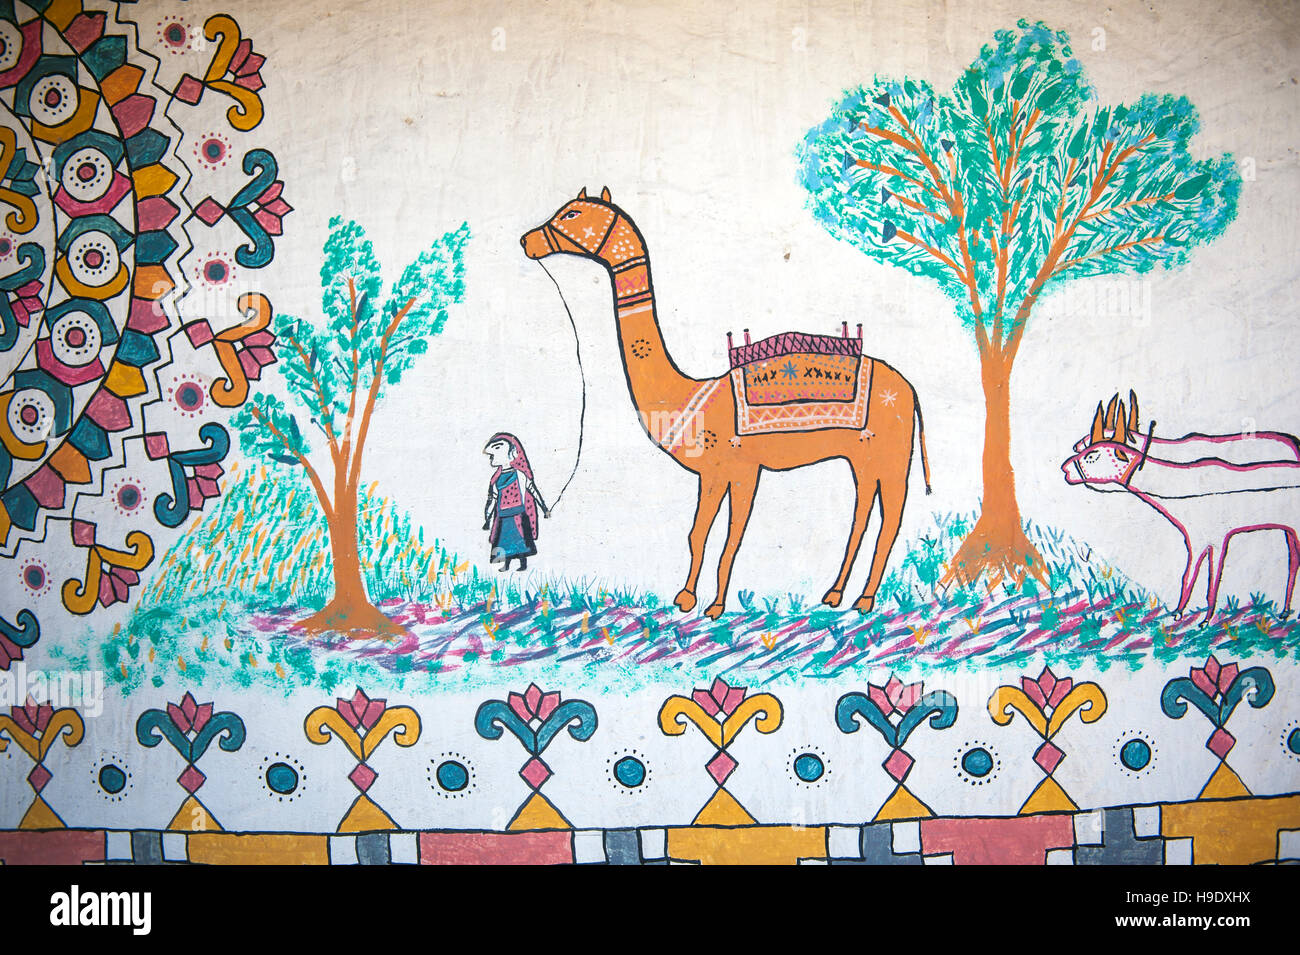 A painting of every day village life the inside wall of a Meghawal tribal house in Hodka, a semi-arid region bordering - Stock Image